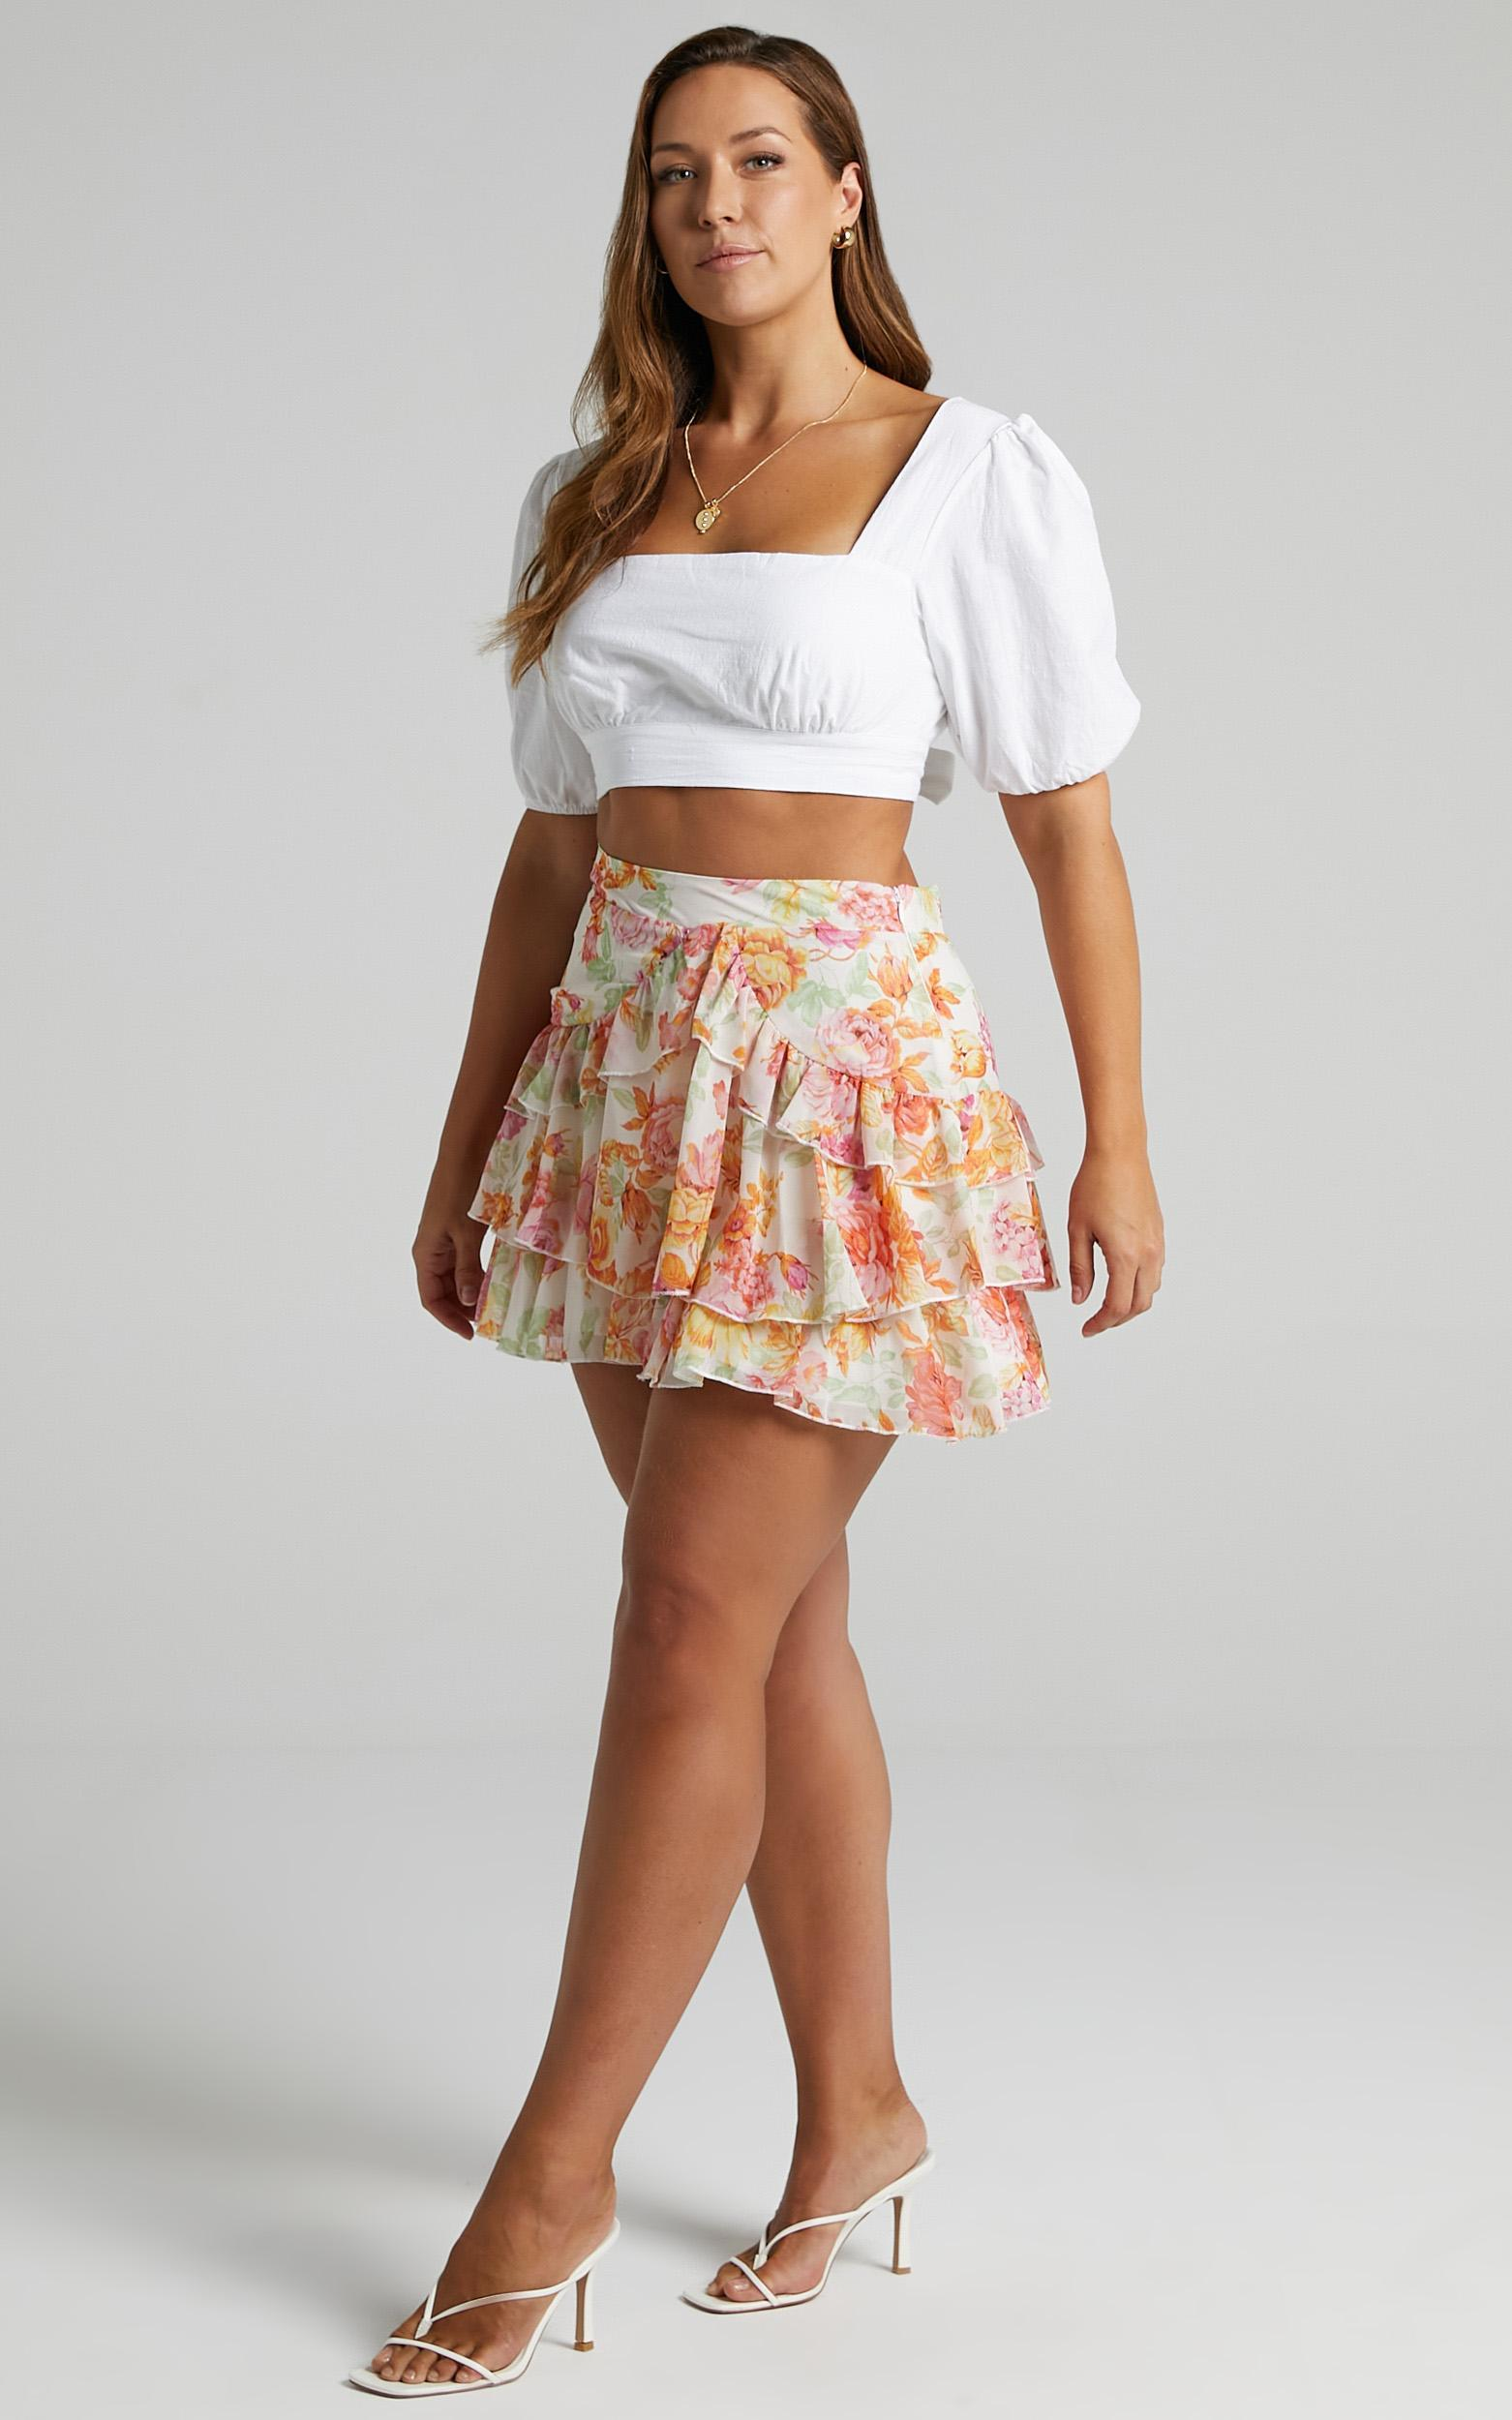 Balin Skirt in Romantic Floral - 06, MLT1, hi-res image number null